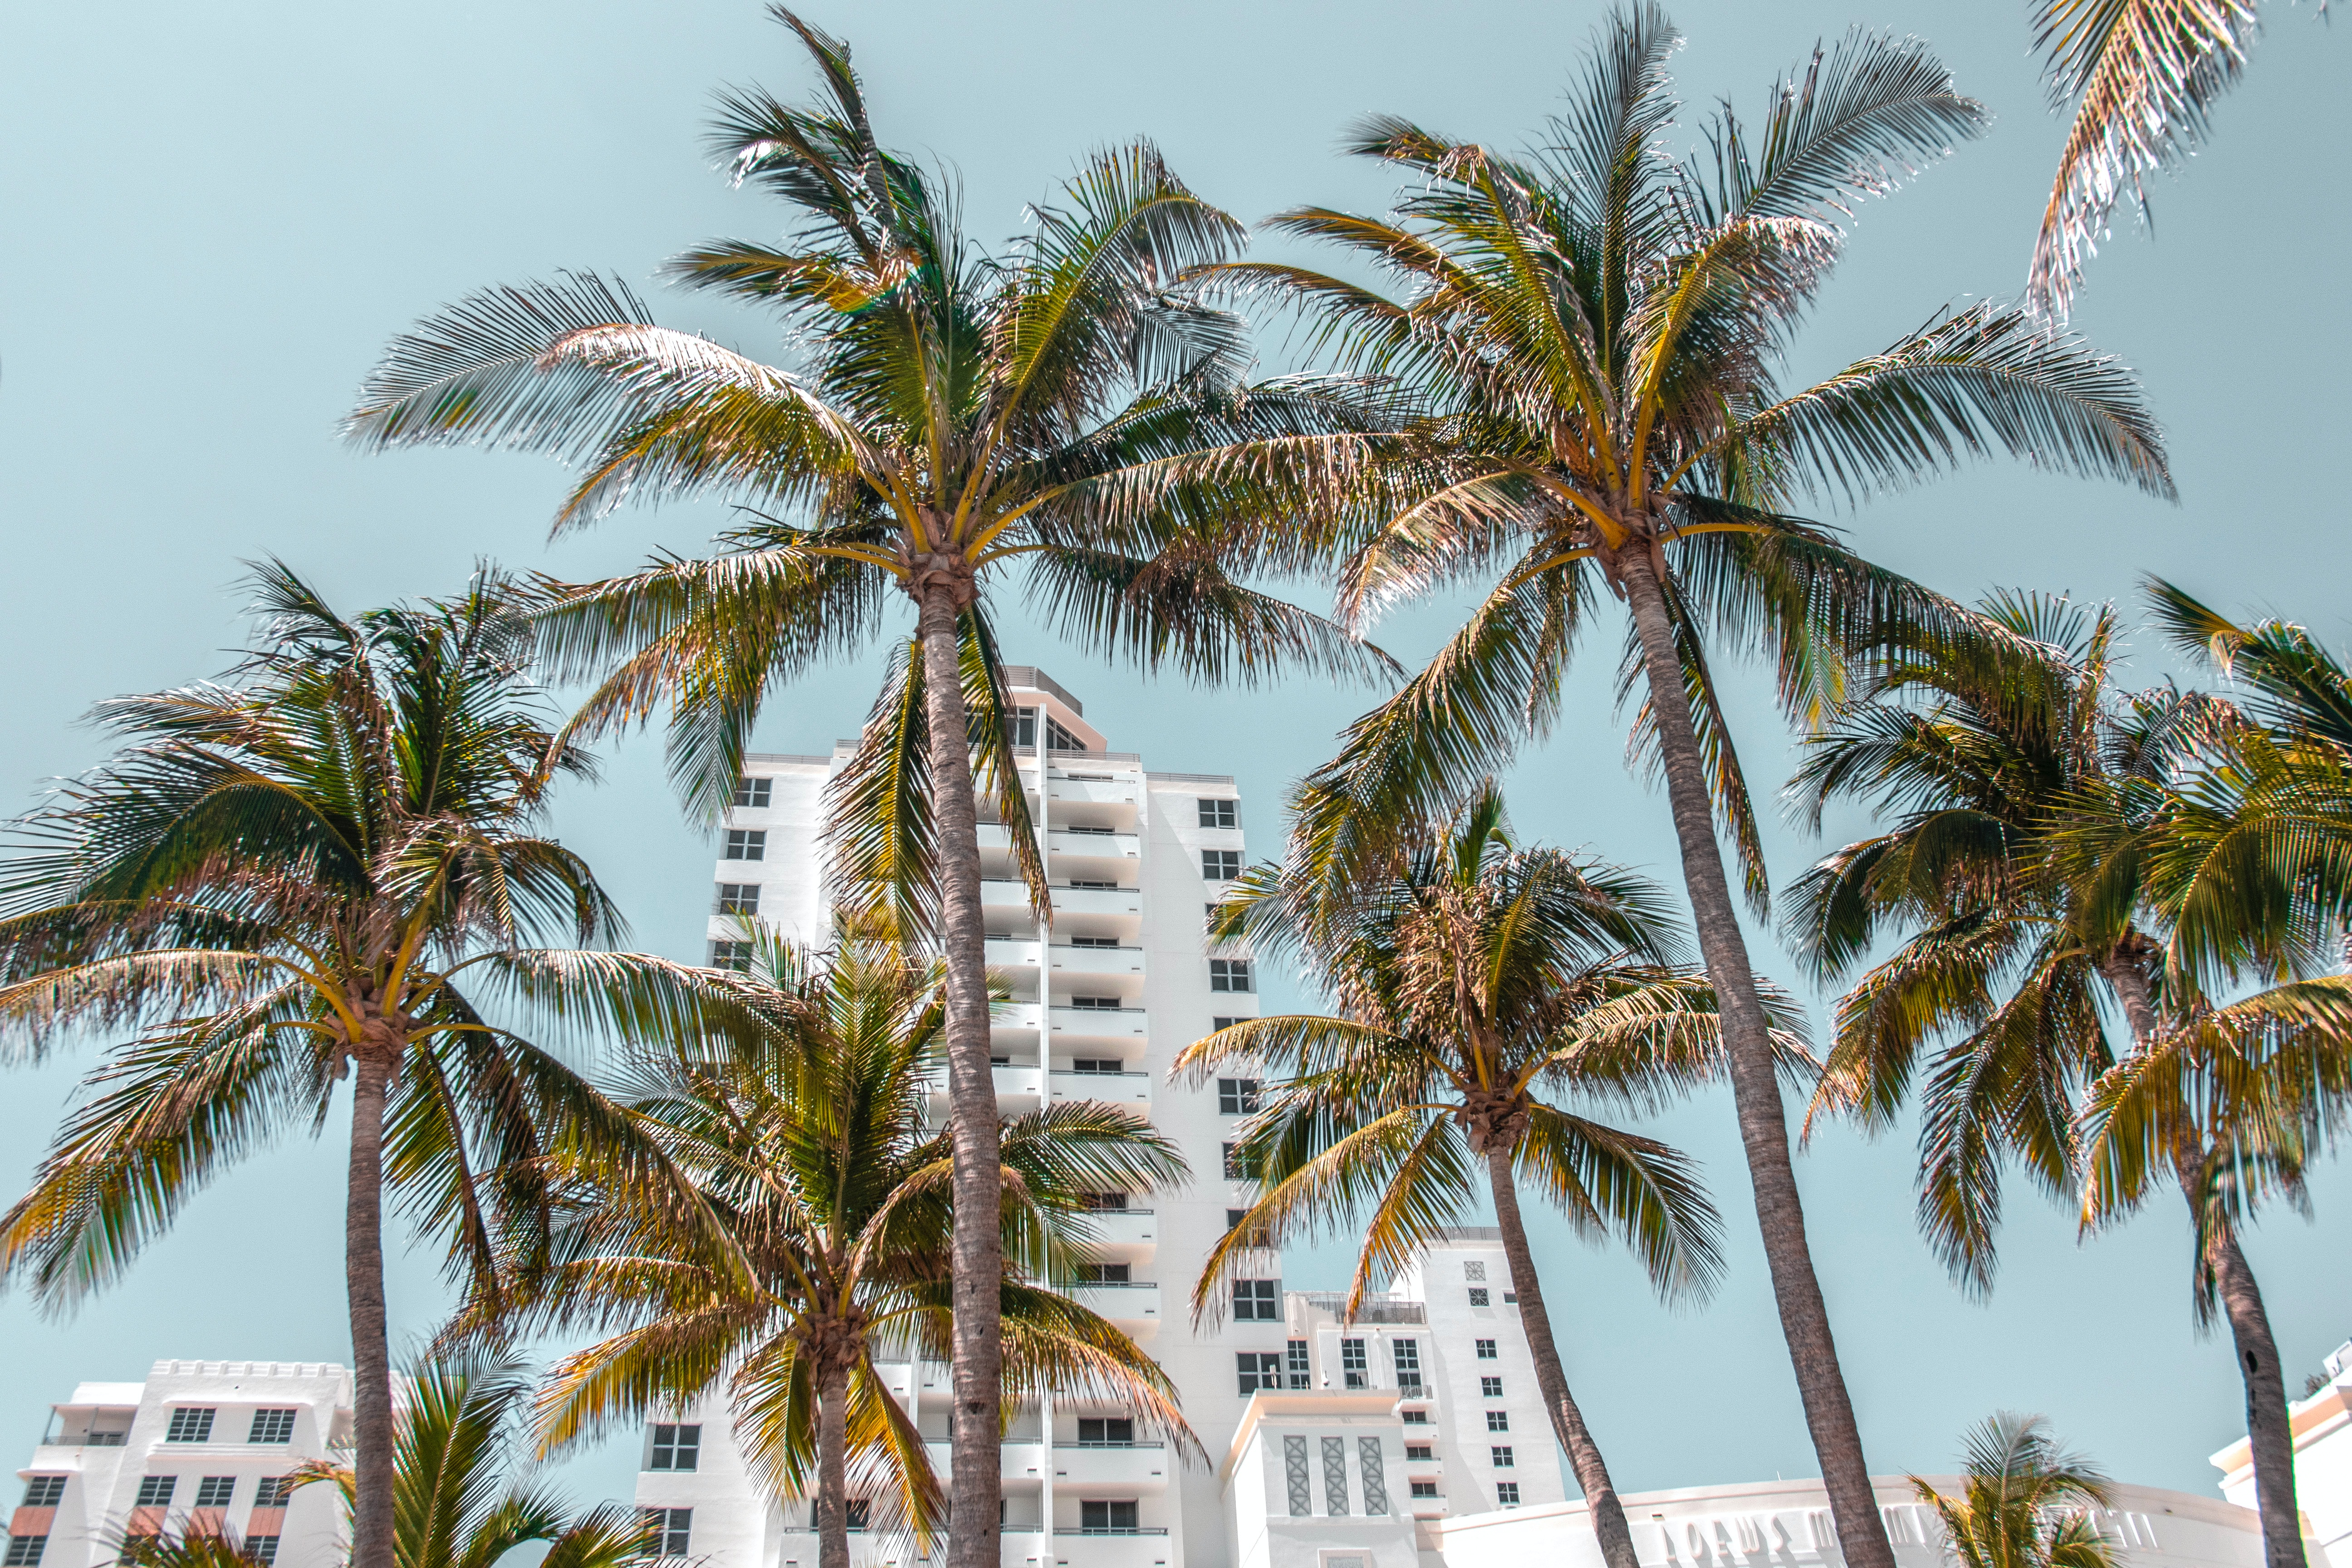 Bryan is skilled in determining the appropriate listing price for Fort Lauderdale homes for sale.